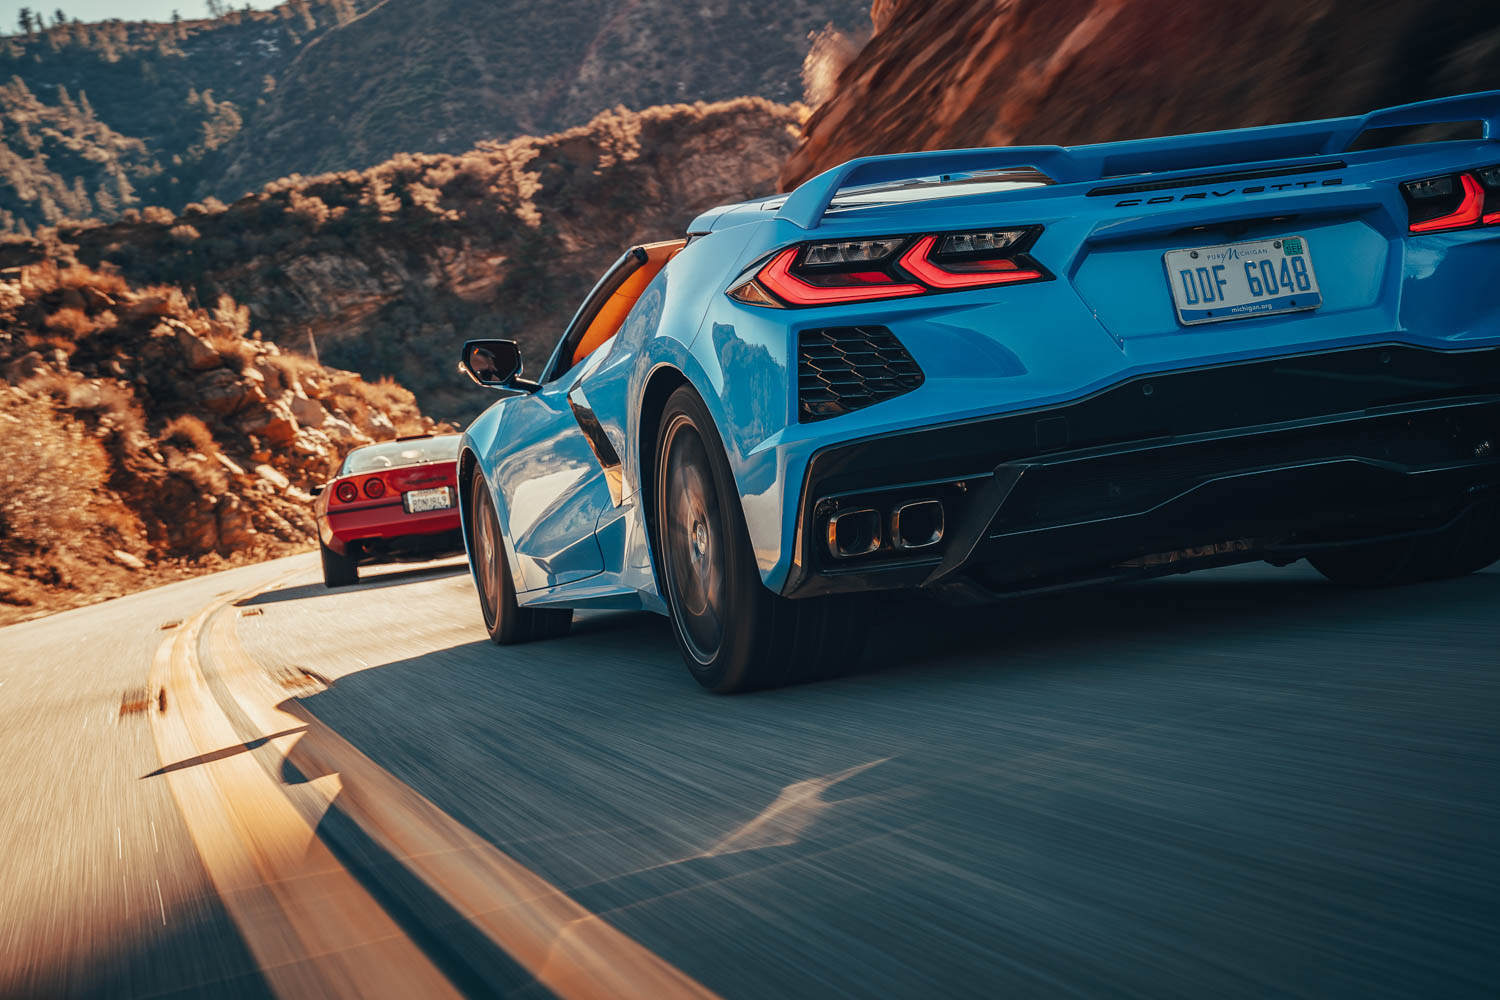 The C8's Z51 package includes bigger brakes; an electronic limitedslip differential; Michelin Pilot Sport tires; performance exhaust and suspension; and aero aids.